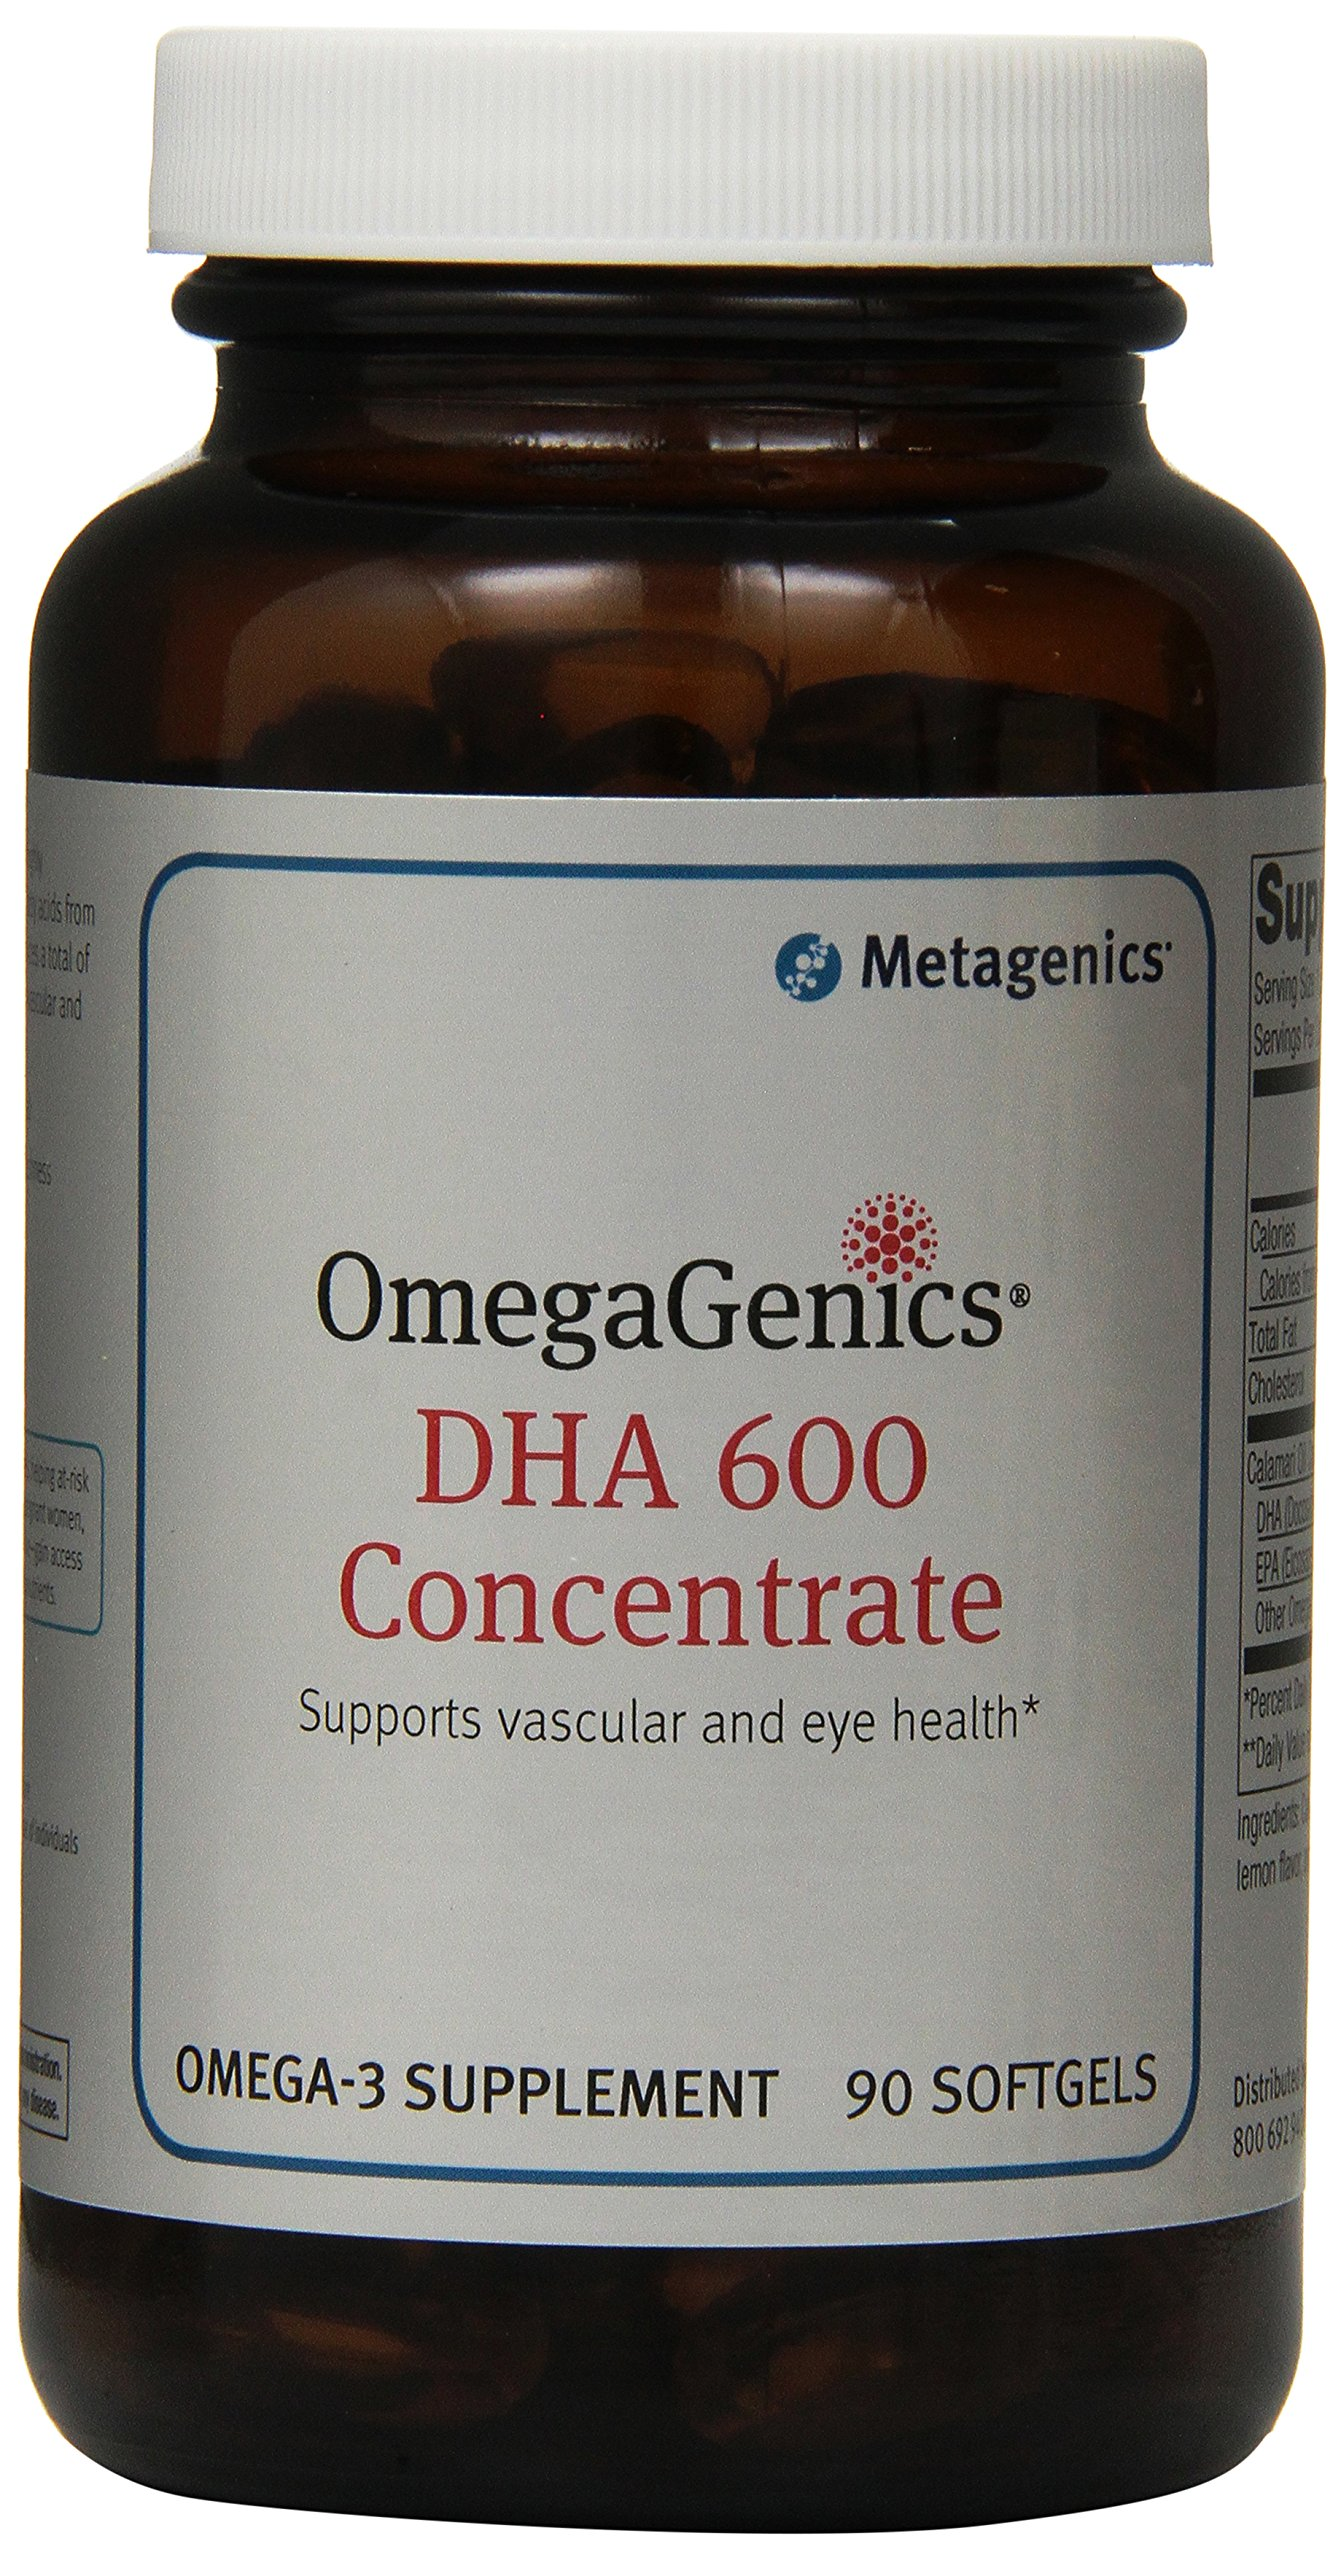 Metagenics Omegagenics DHA Concentrate Soft Gels, 90 Count